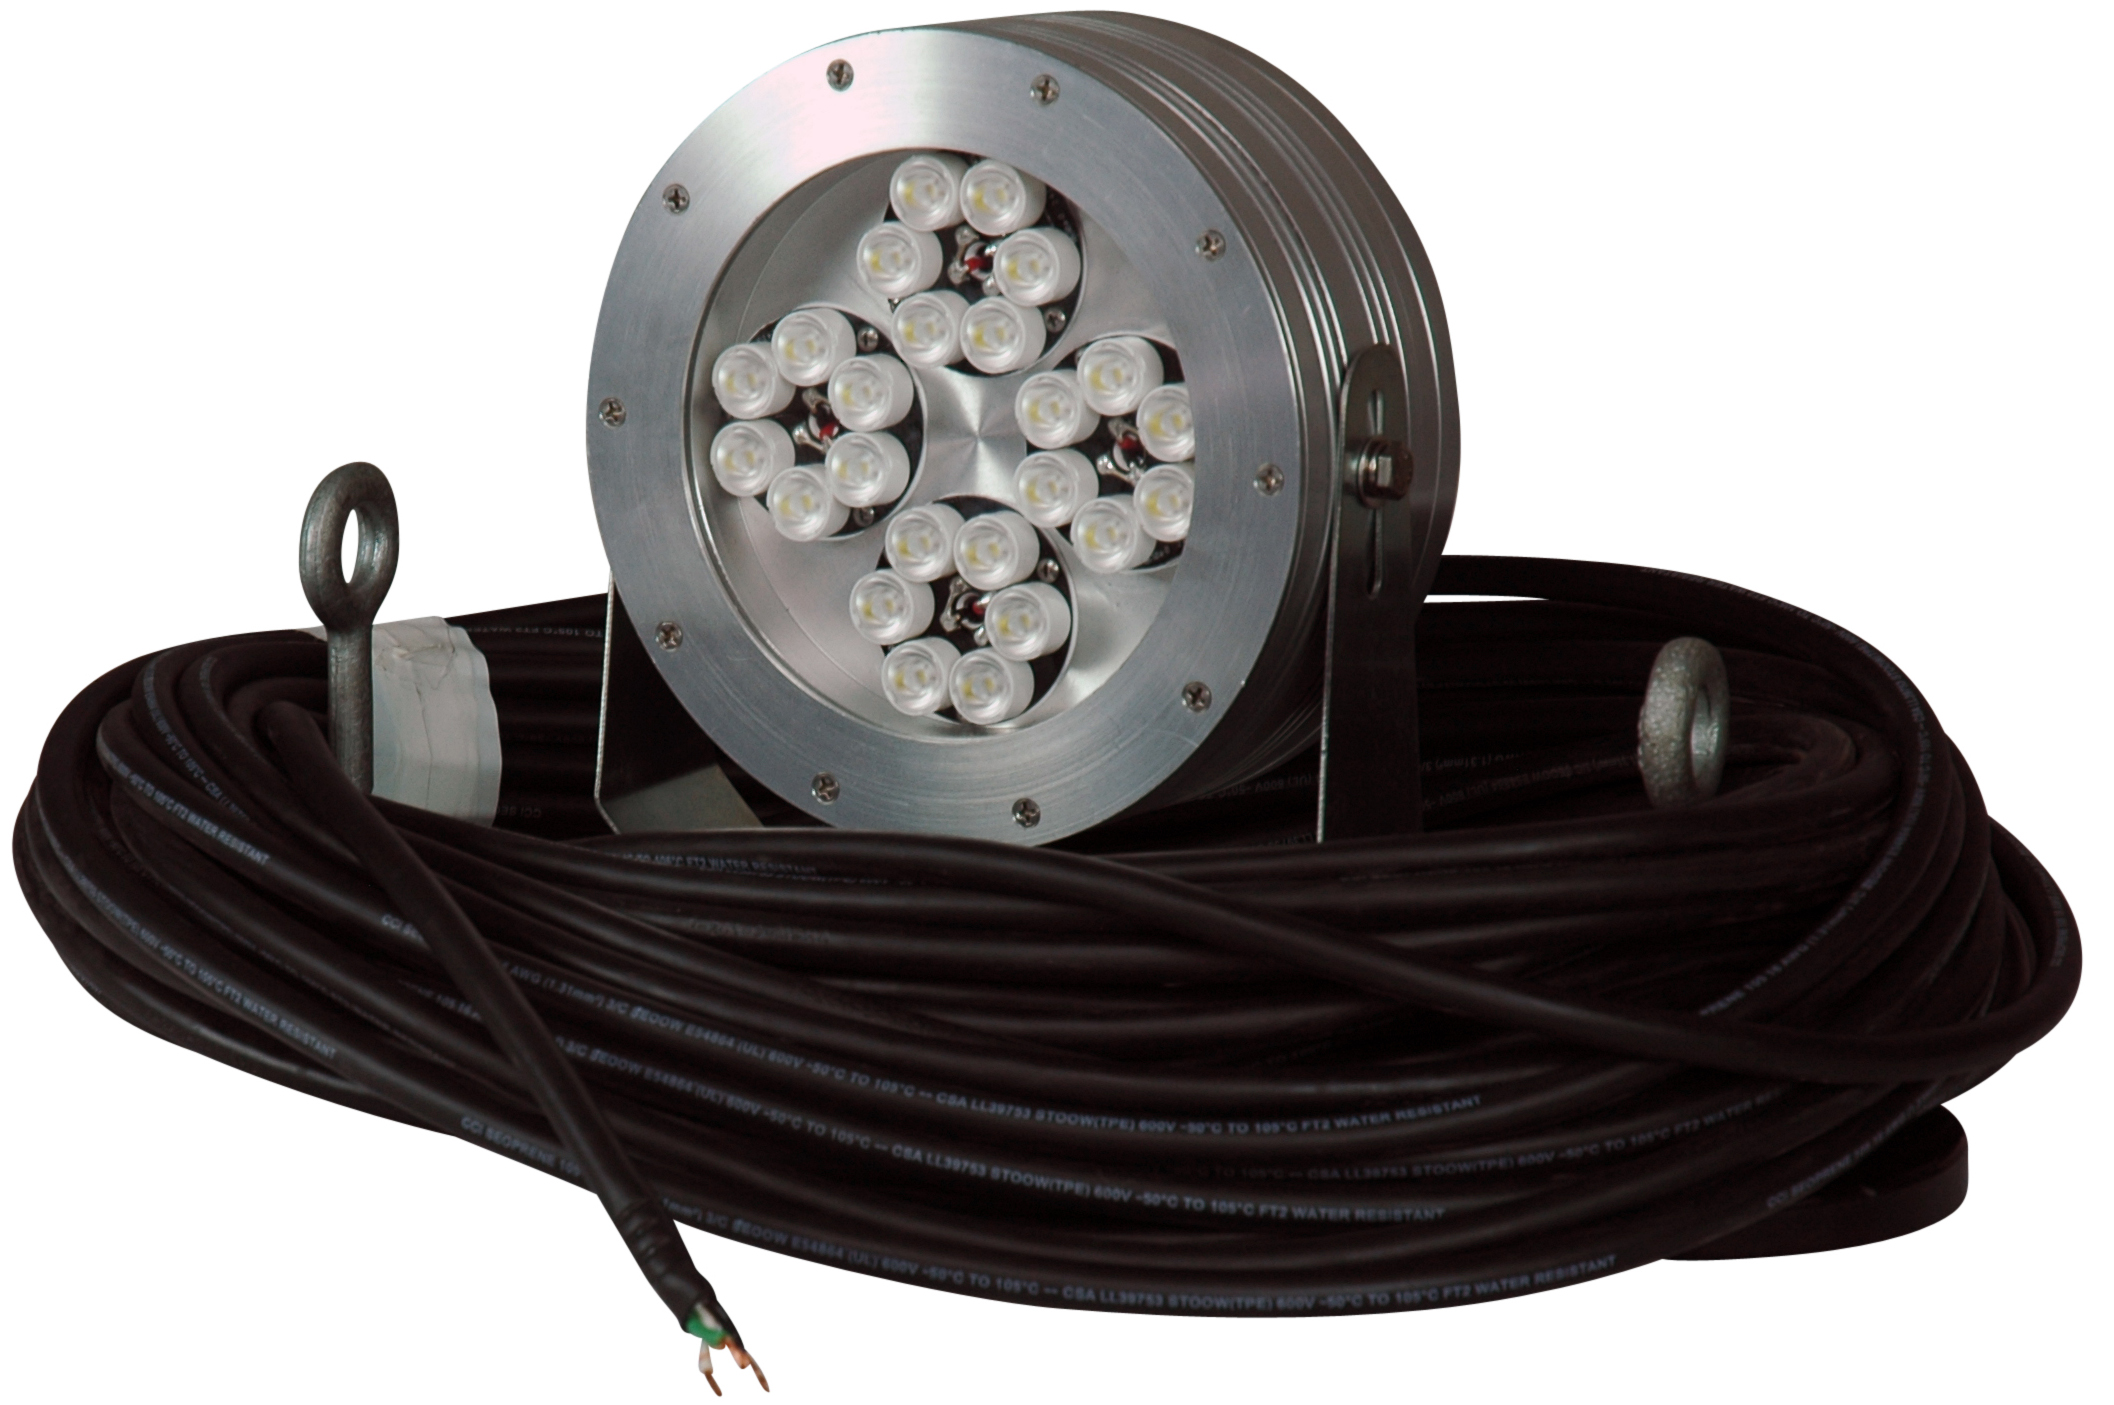 31 Watt Low Voltage Led Light Fixture With Magnetic Mount For Use Wiring Extension Cord To Within Hazardous Locationsmagnetically Mounted 50